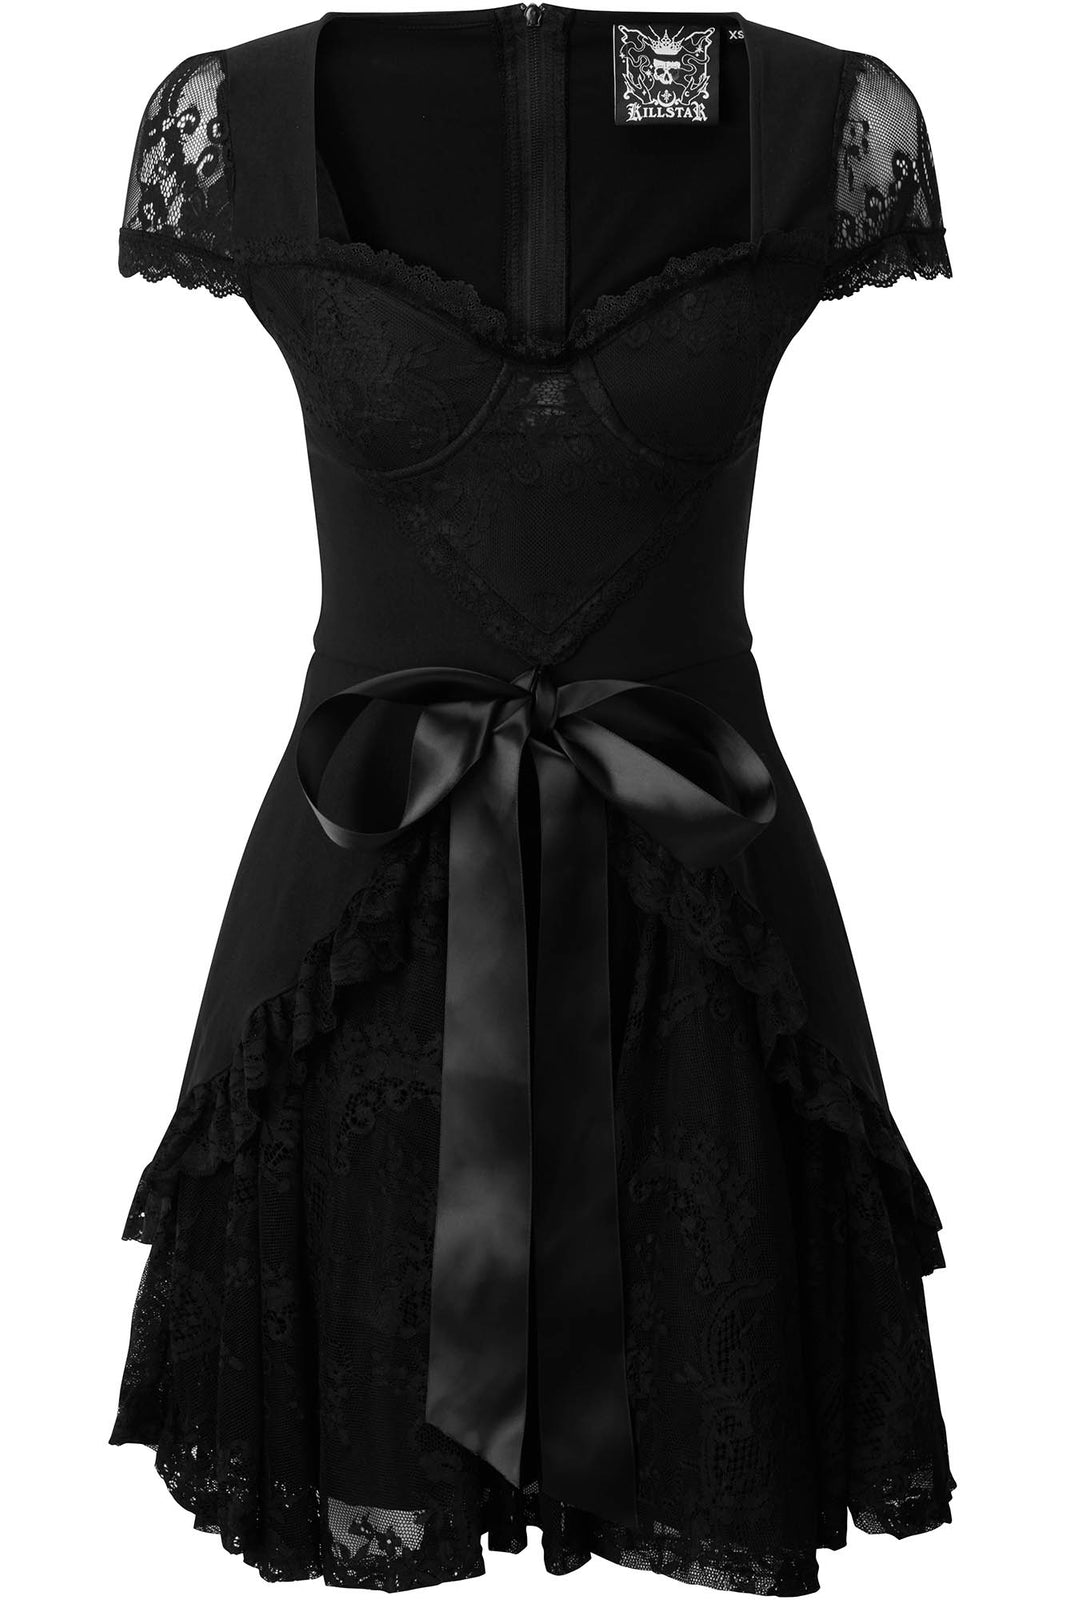 Hocus Party Dress [B]